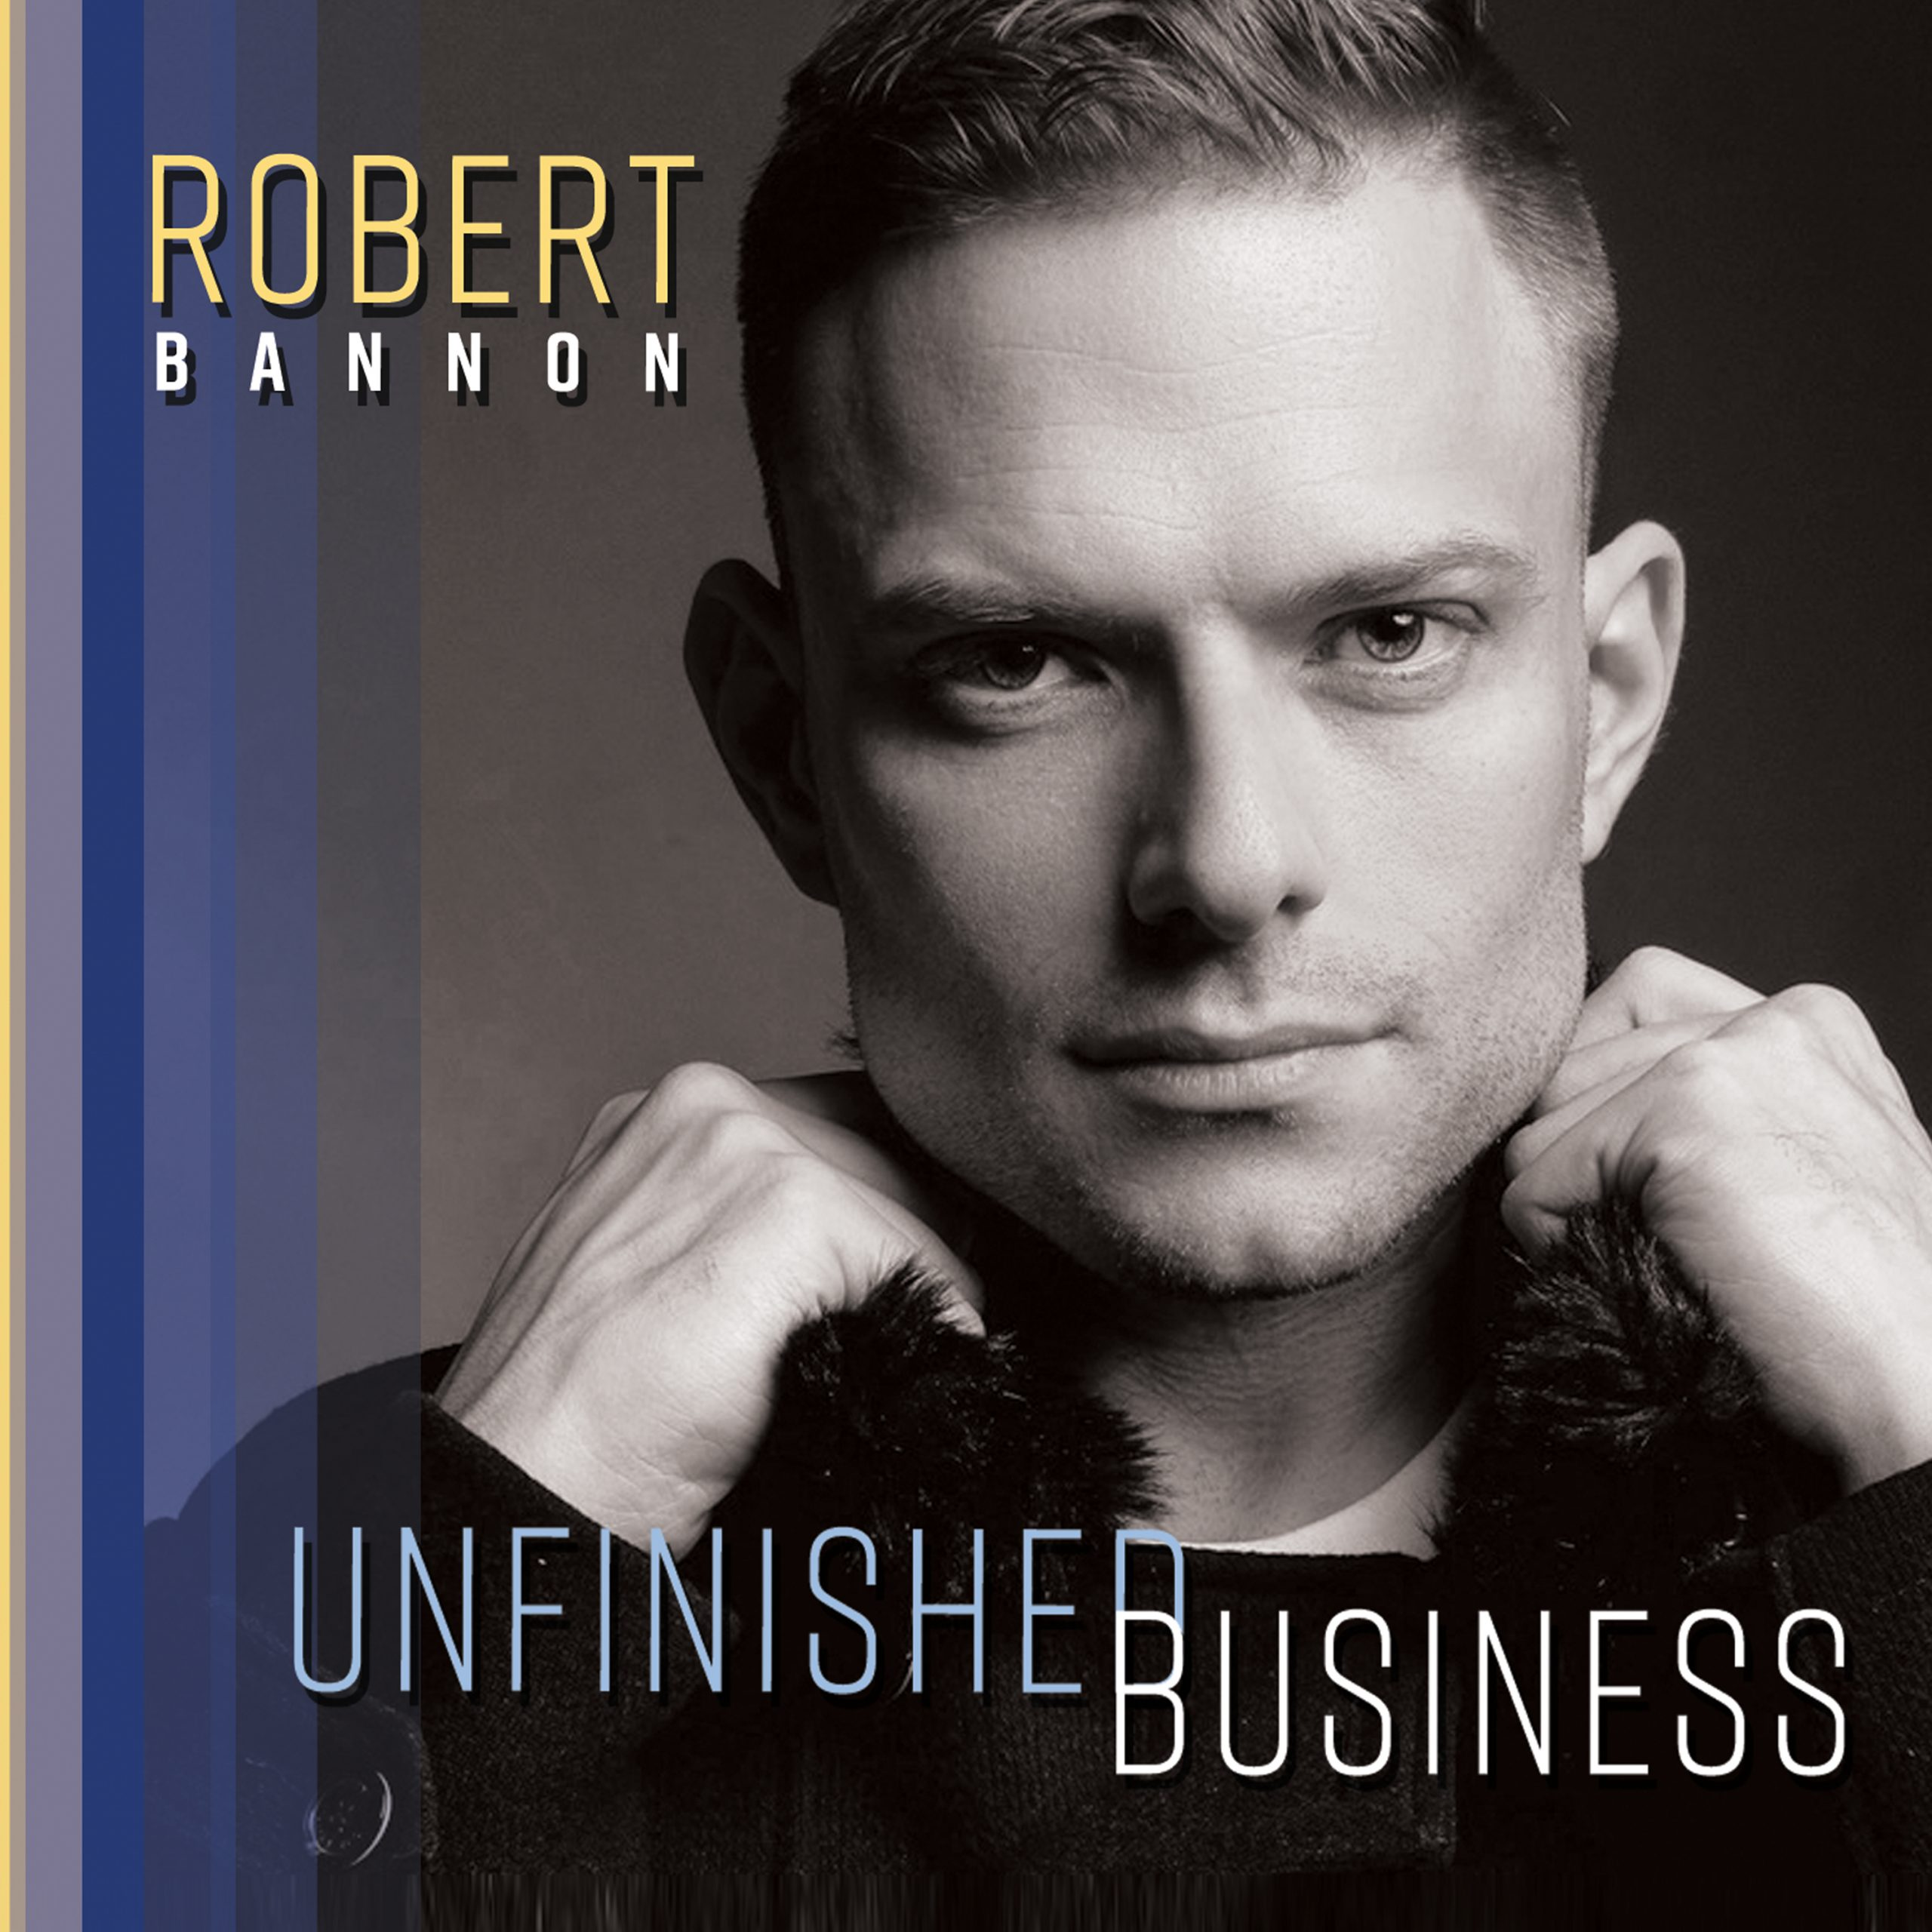 Robert Bannon 'Unfinished Business' Album Cover